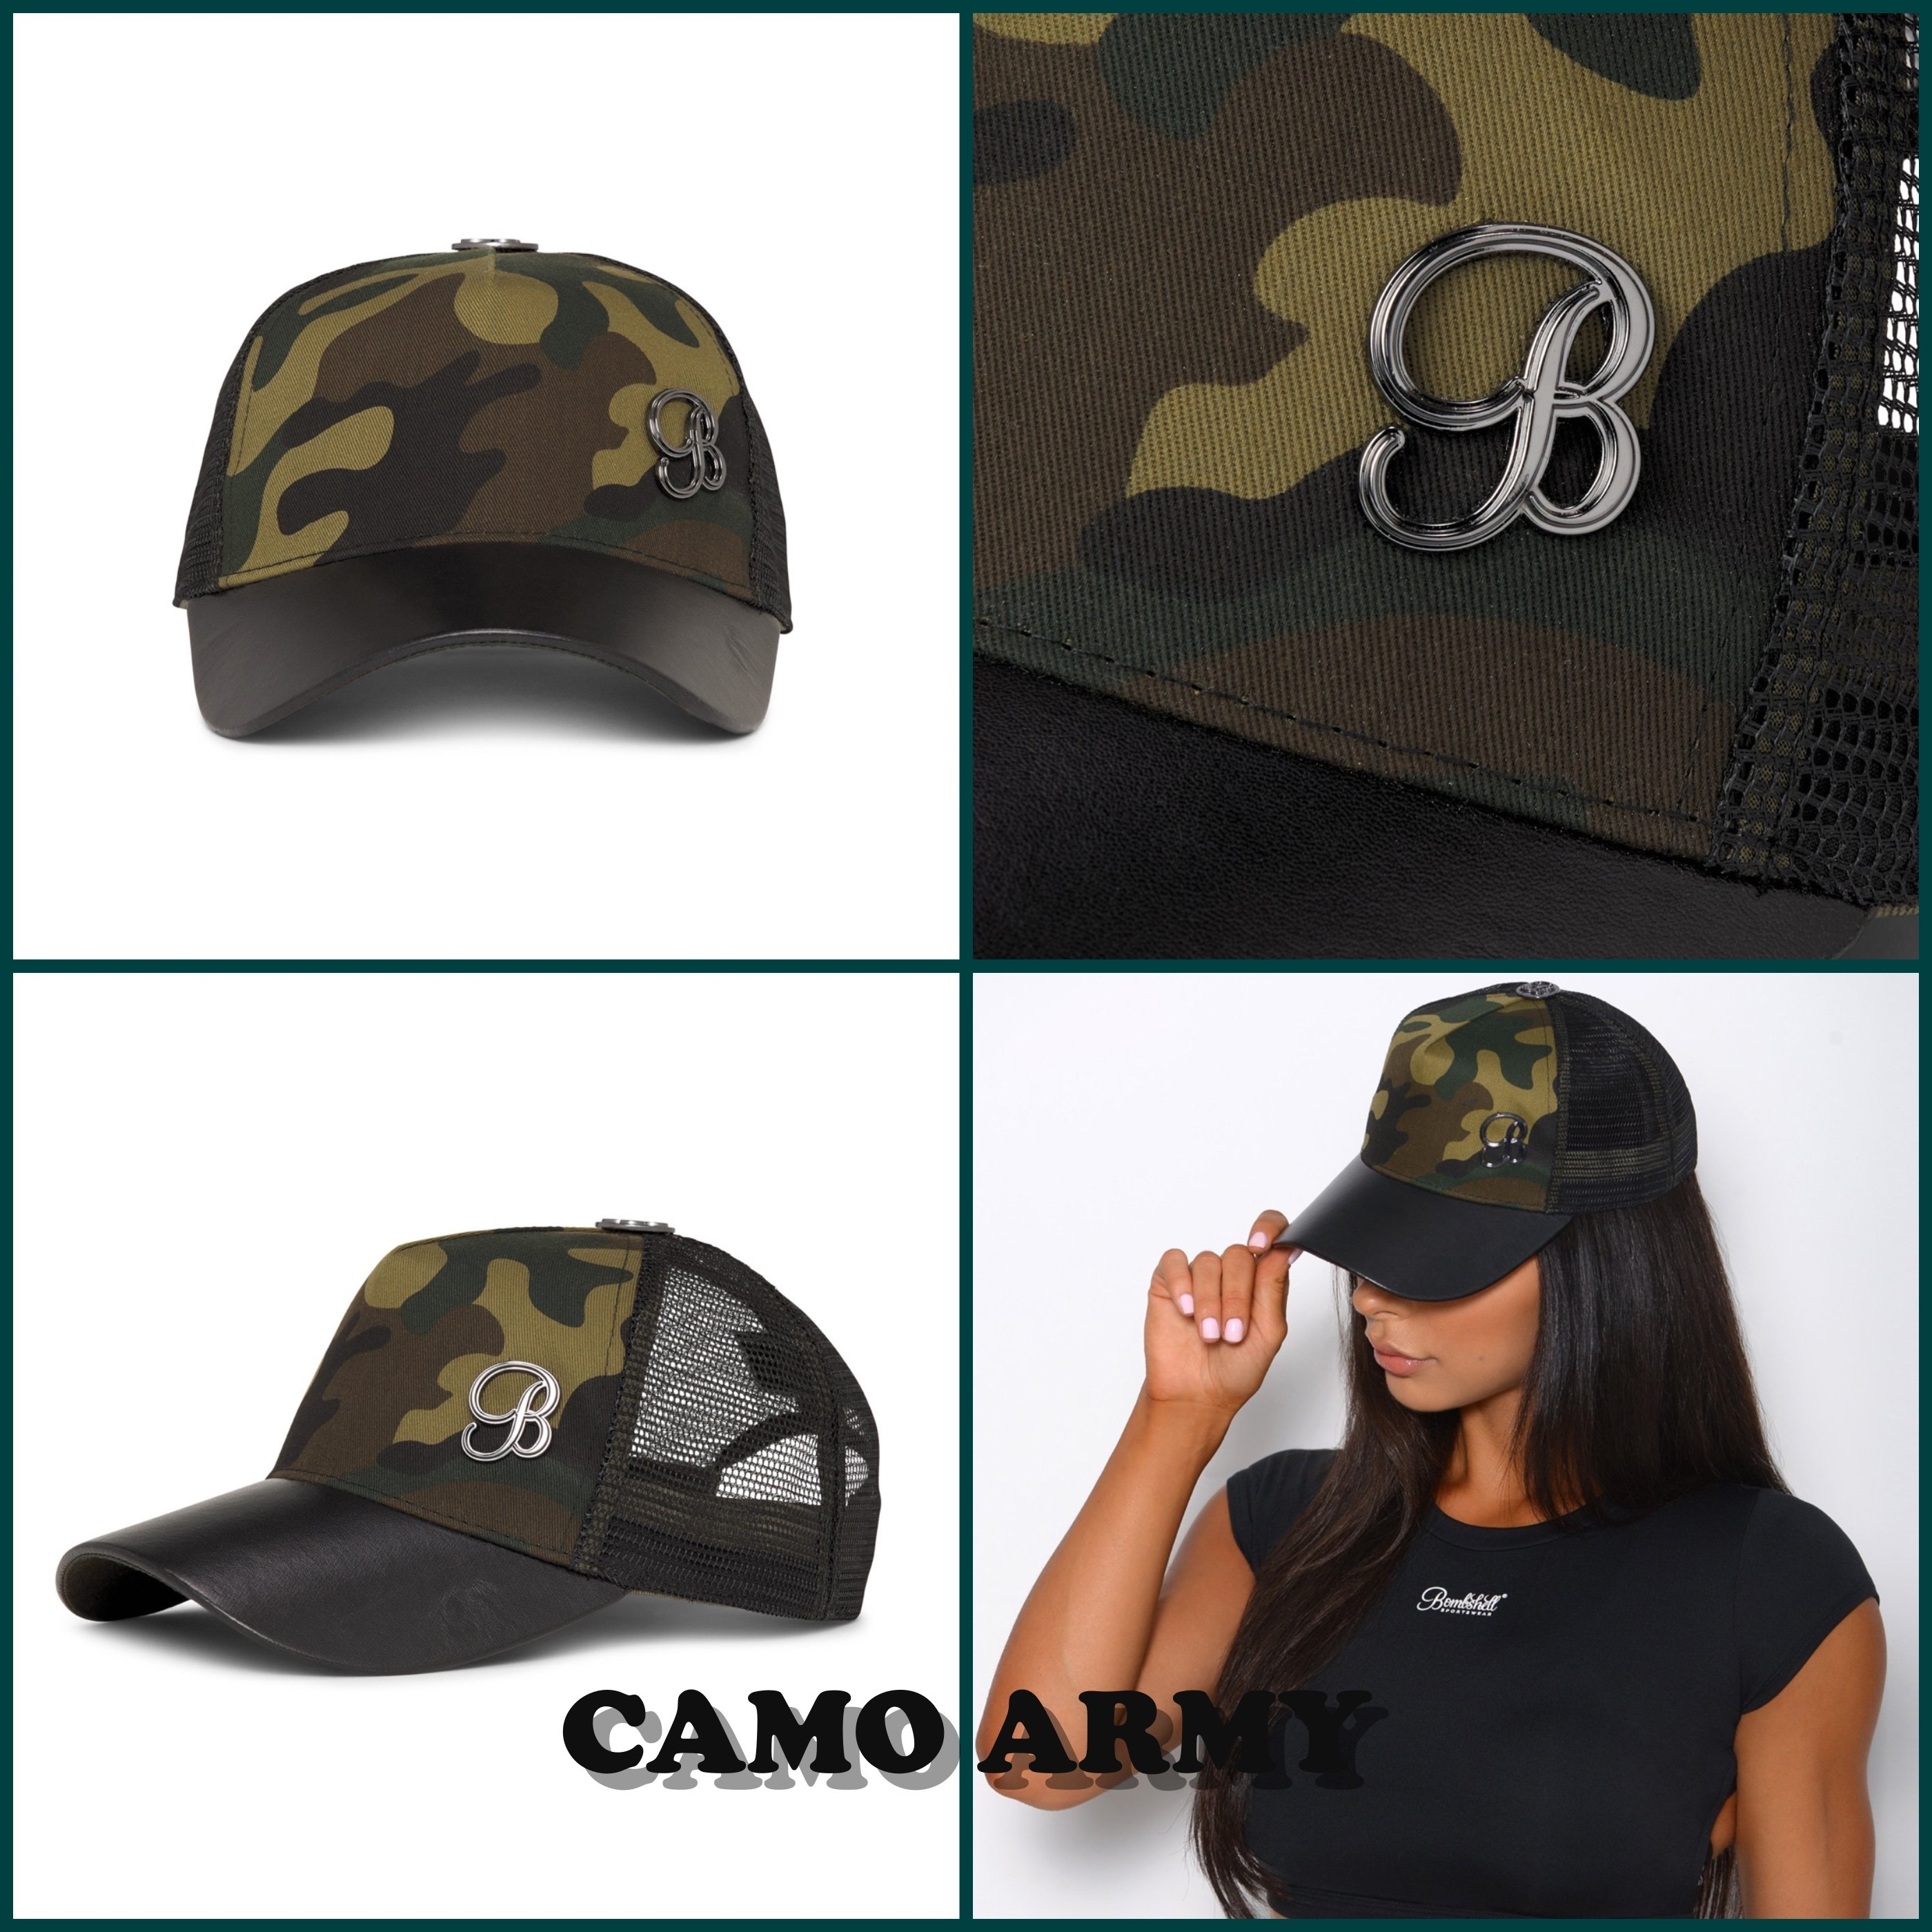 shop bombshell sportswear accessories